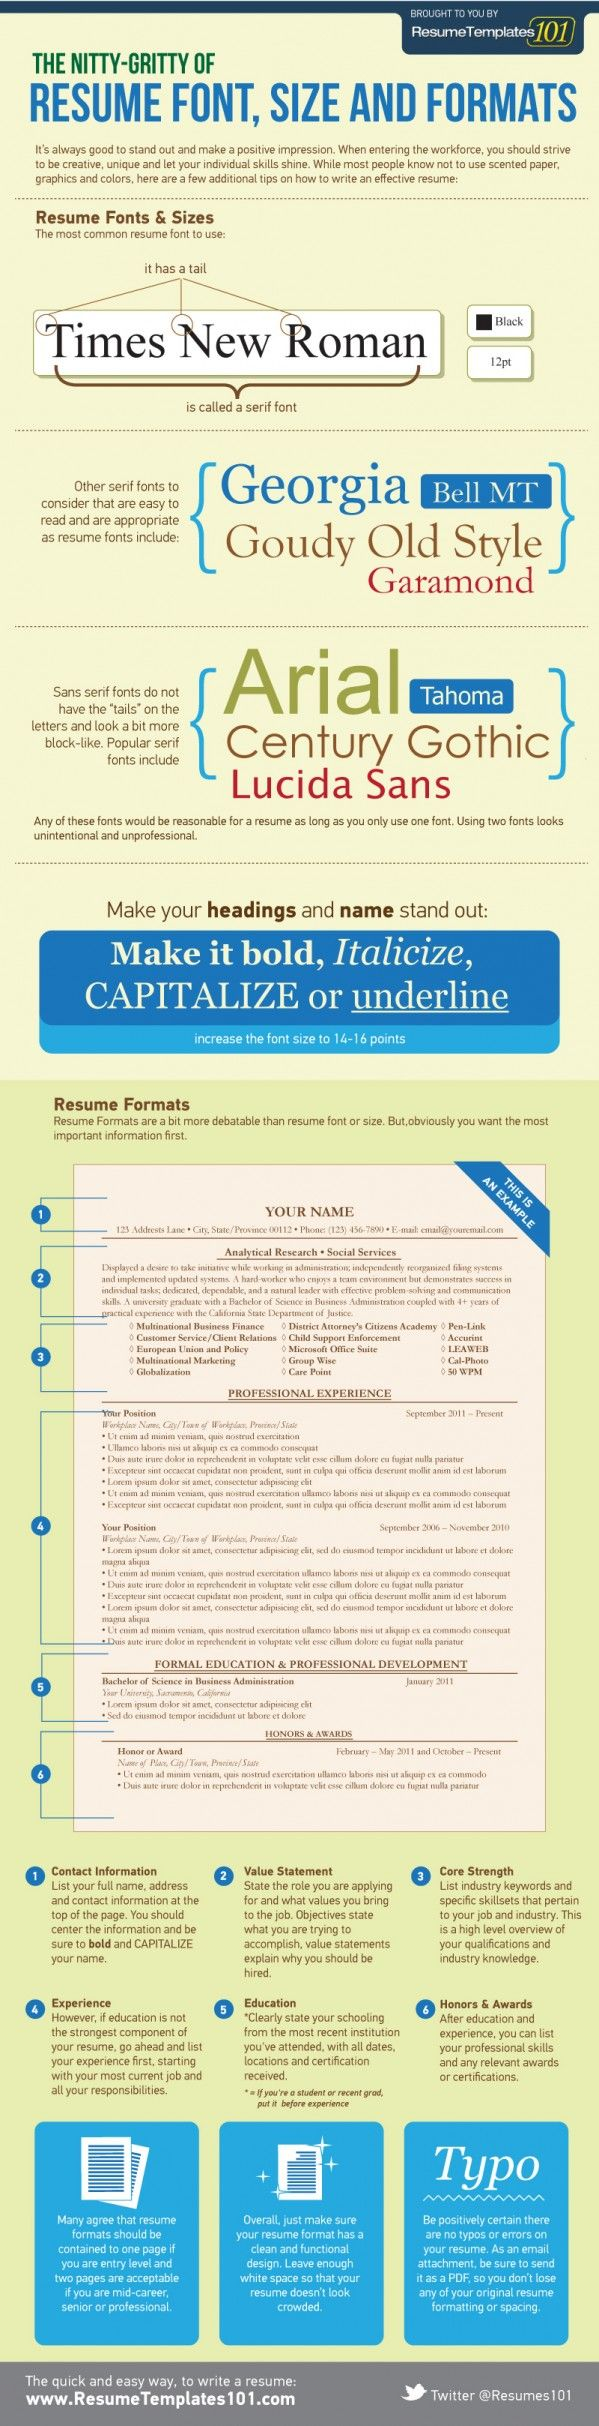 Best Fonts and Proper Font Size for Resumes | Empleos, Traduccion y ...